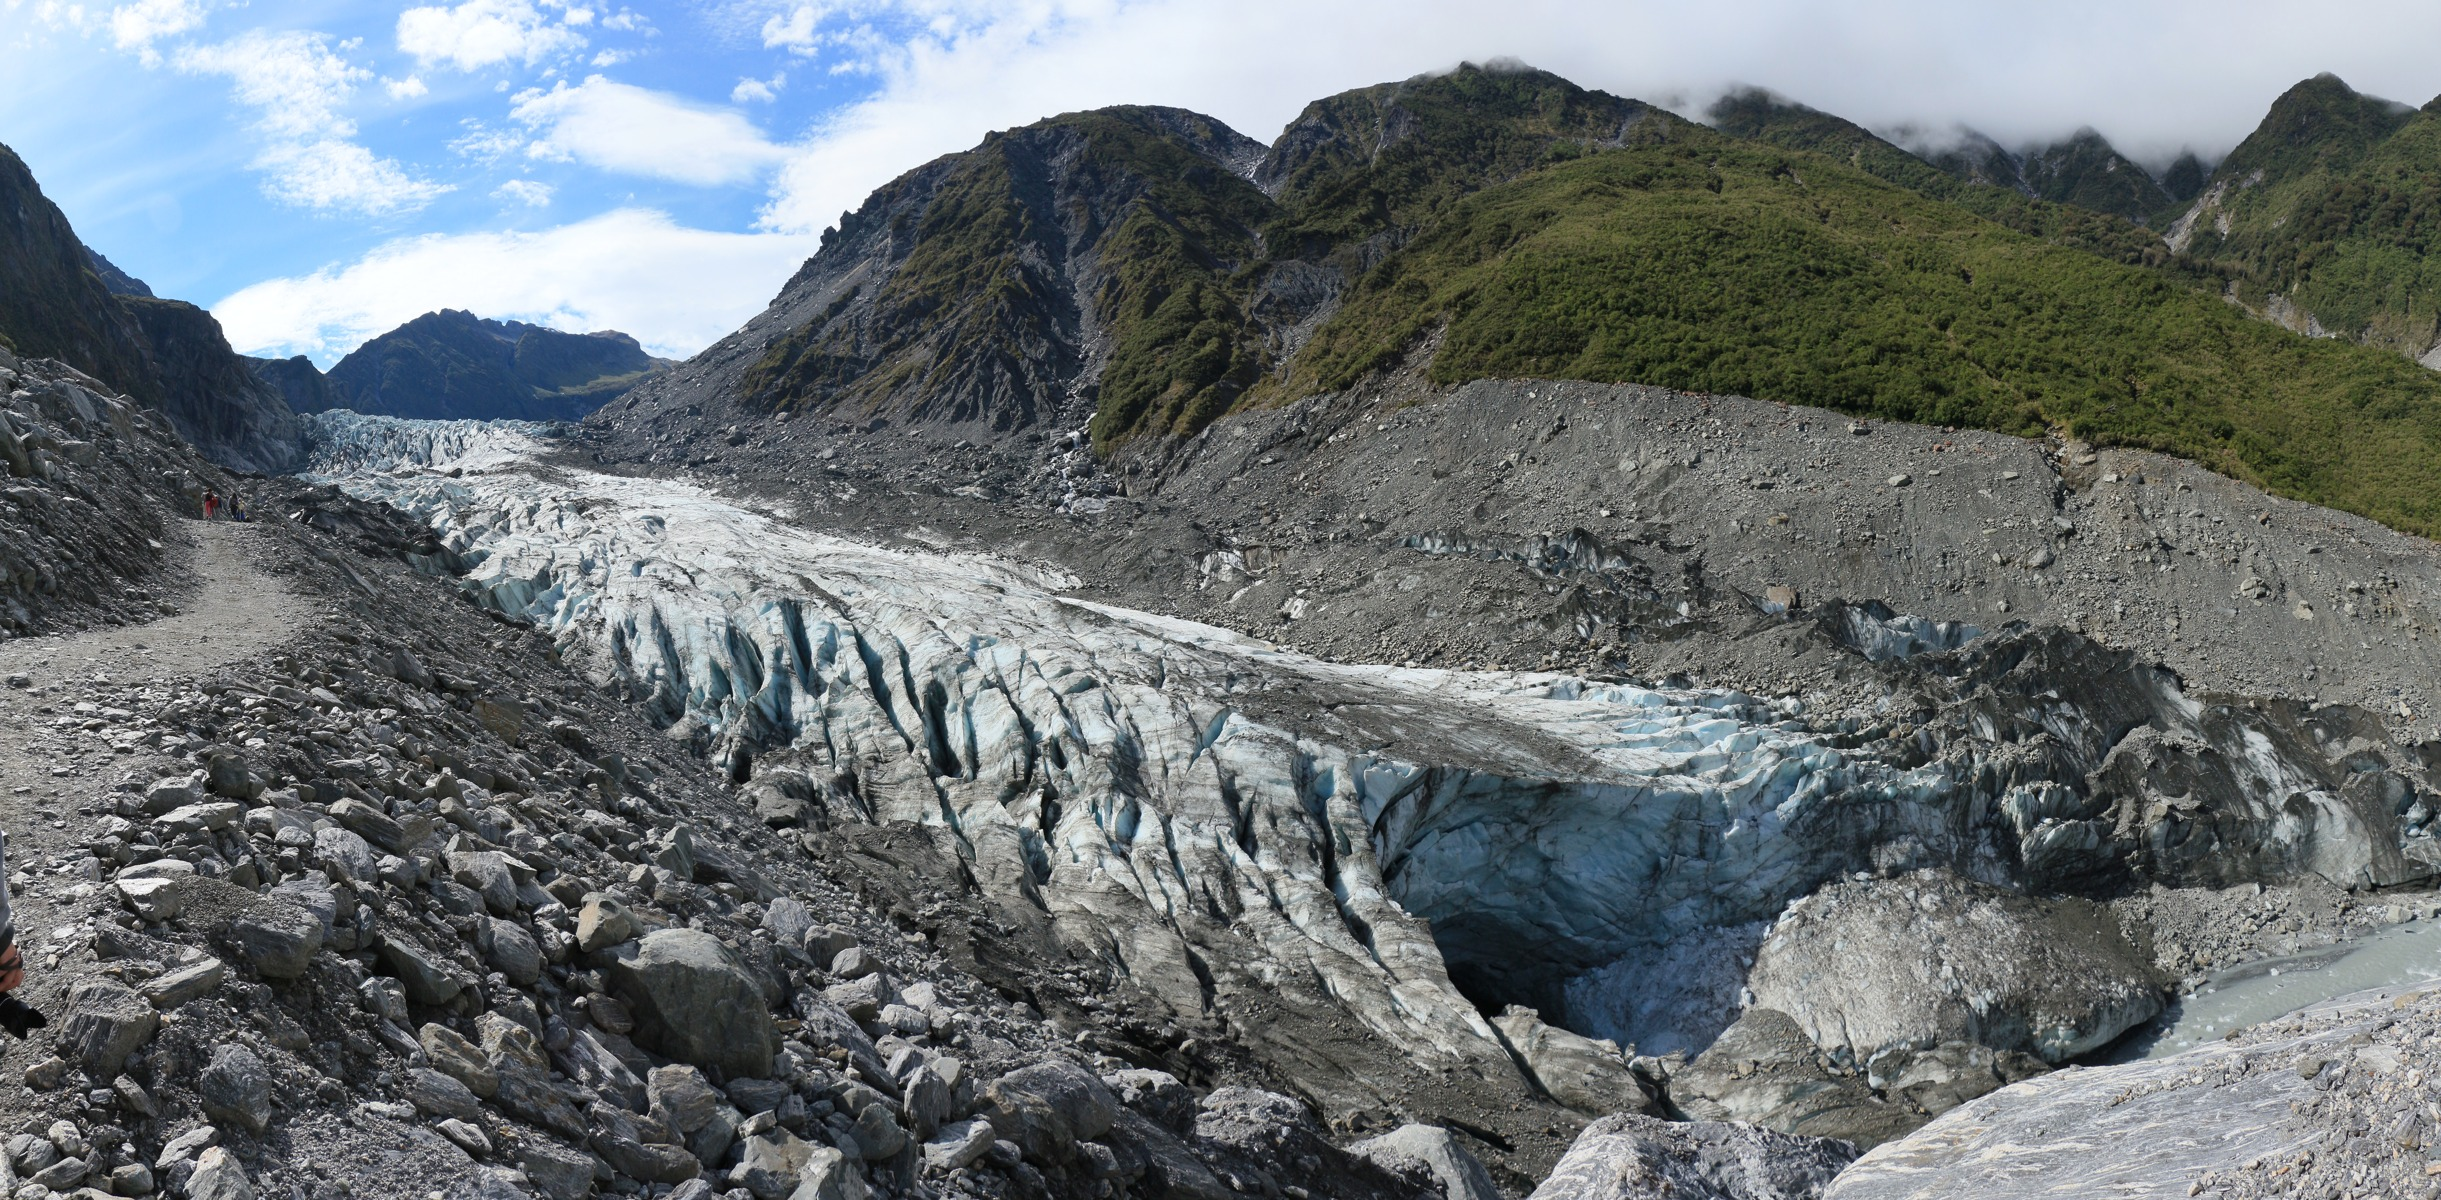 E48400_-_Lower_part_of_Fox_Glacier_with_glacier_mouth,_February_2013